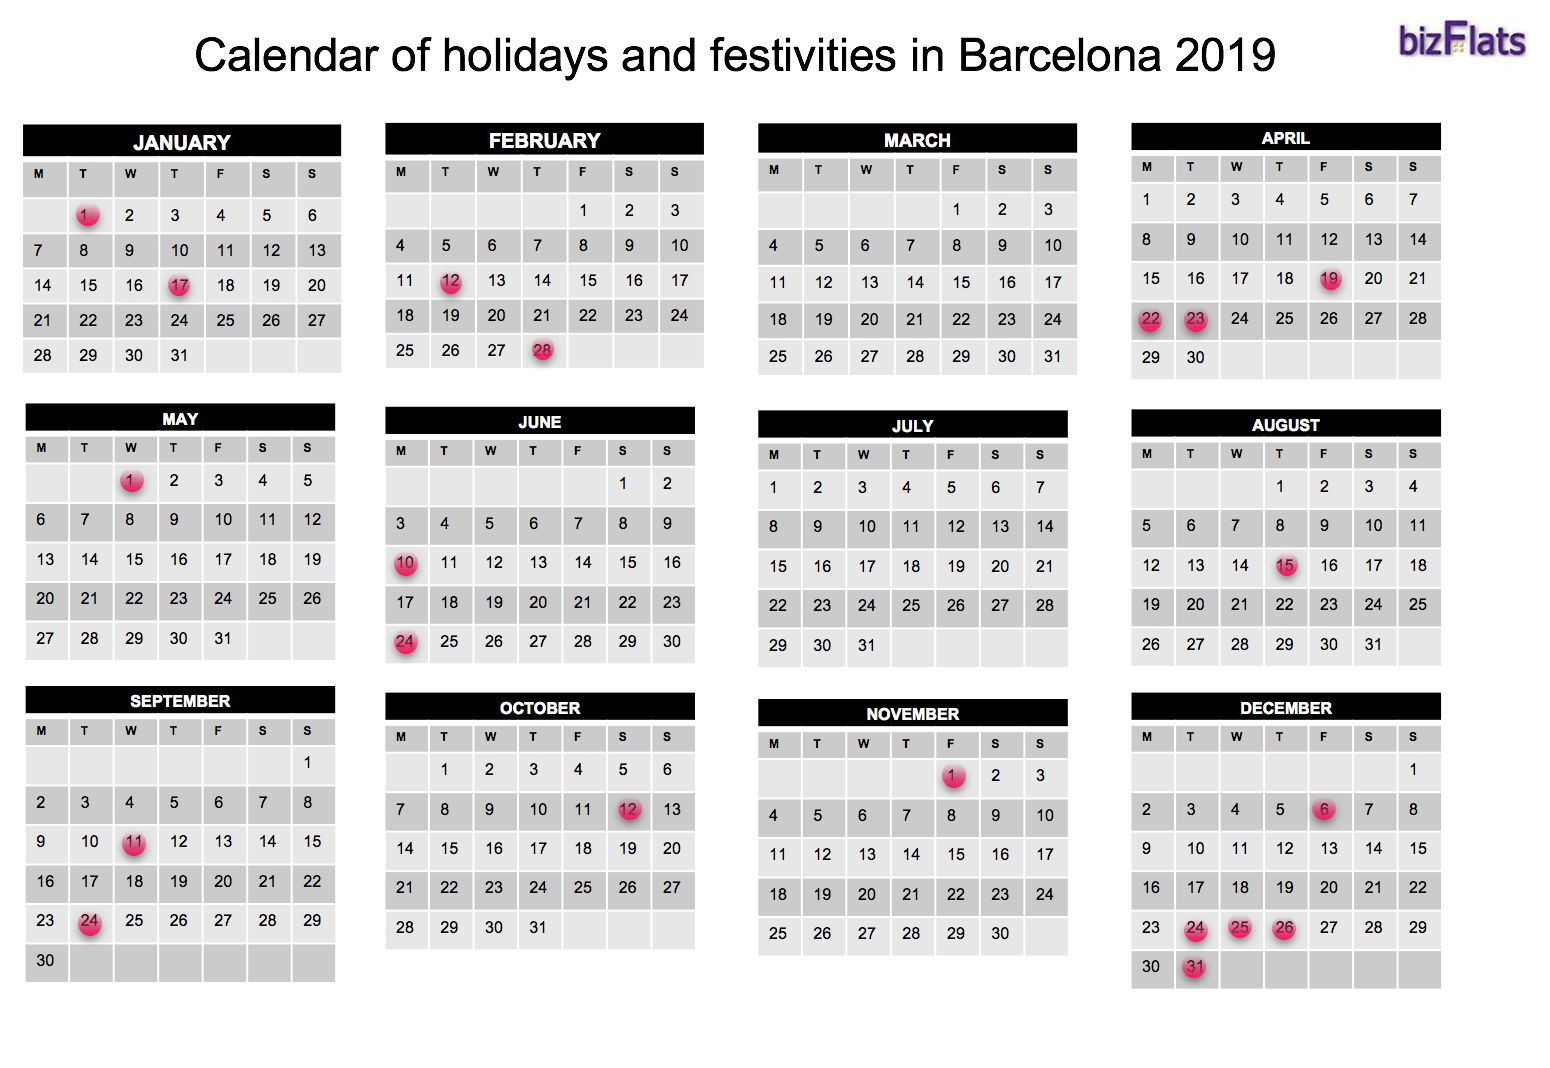 Calendar of Holidays in Barcelona